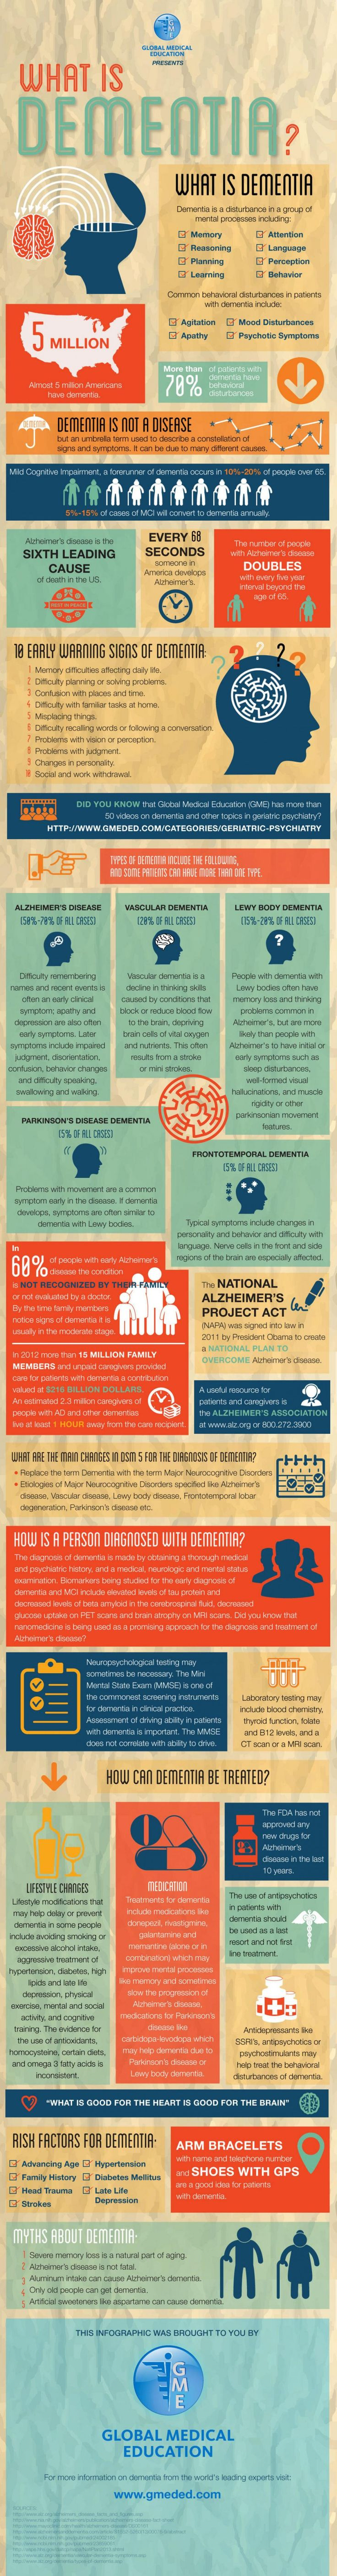 Wondering what #Dementia is exactly? Check out this #infographic for a brief explanation.